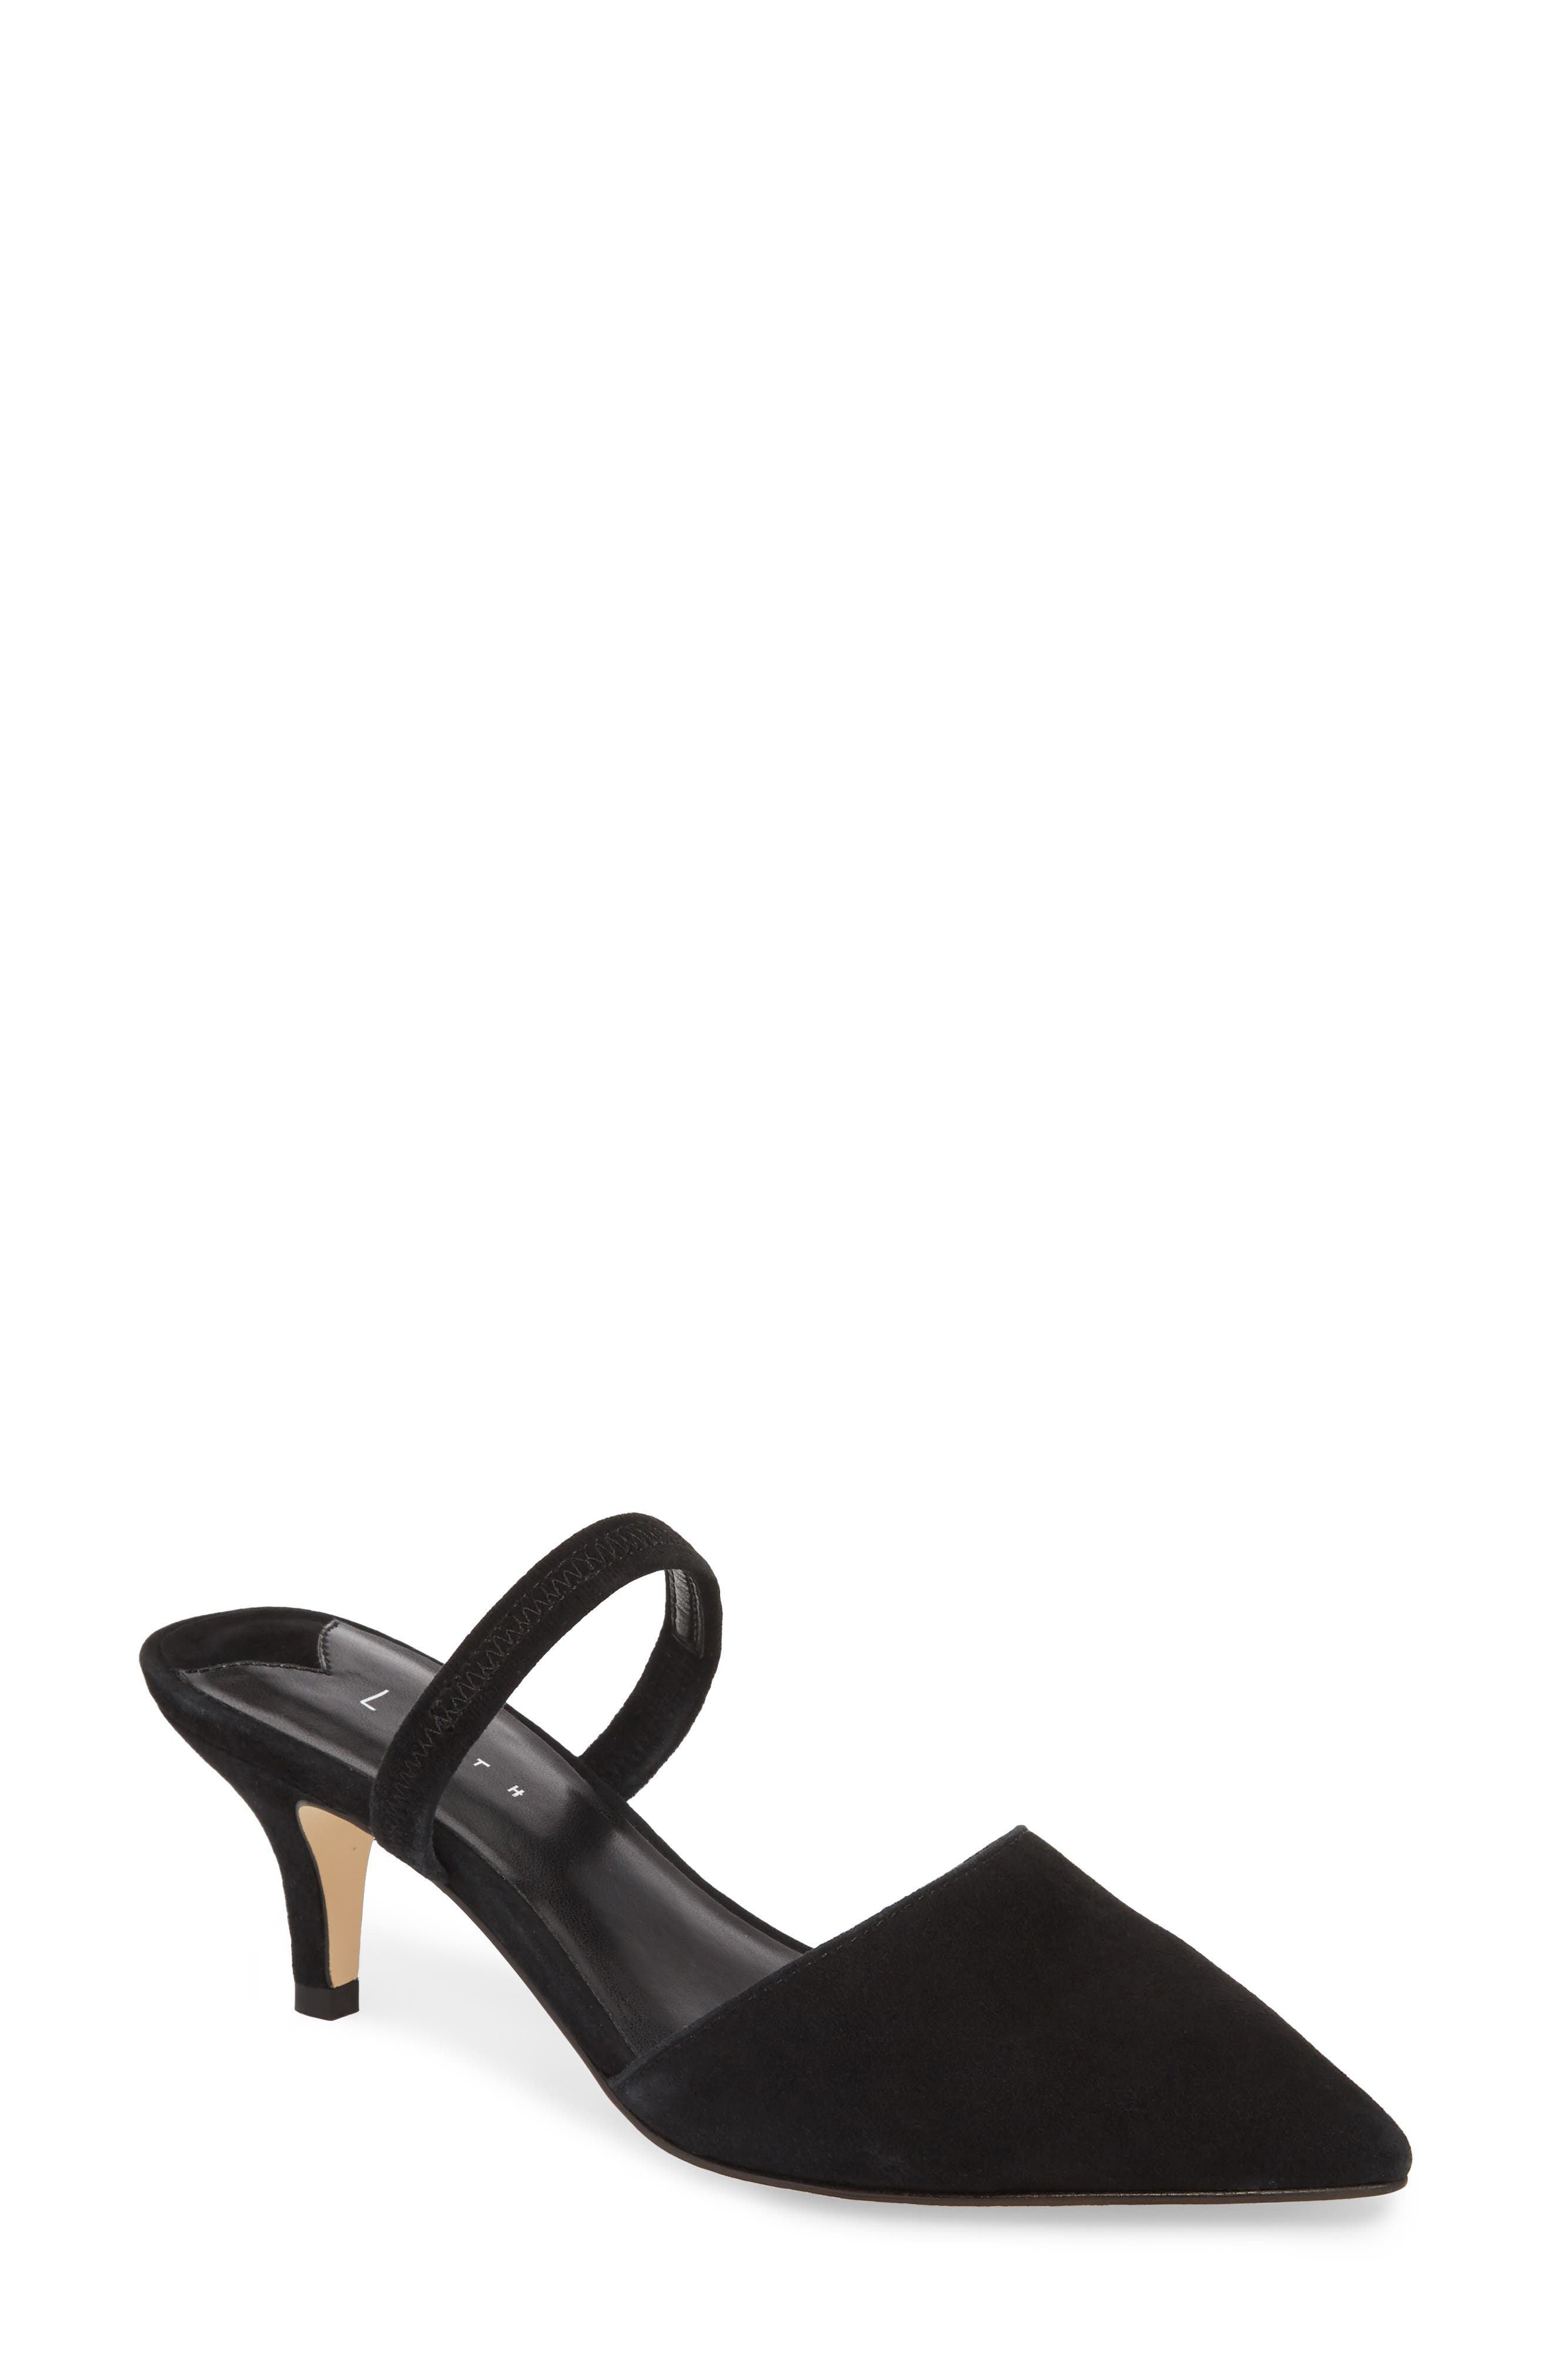 Nikki Convertible Pump,                             Main thumbnail 1, color,                             BLACK SUEDE